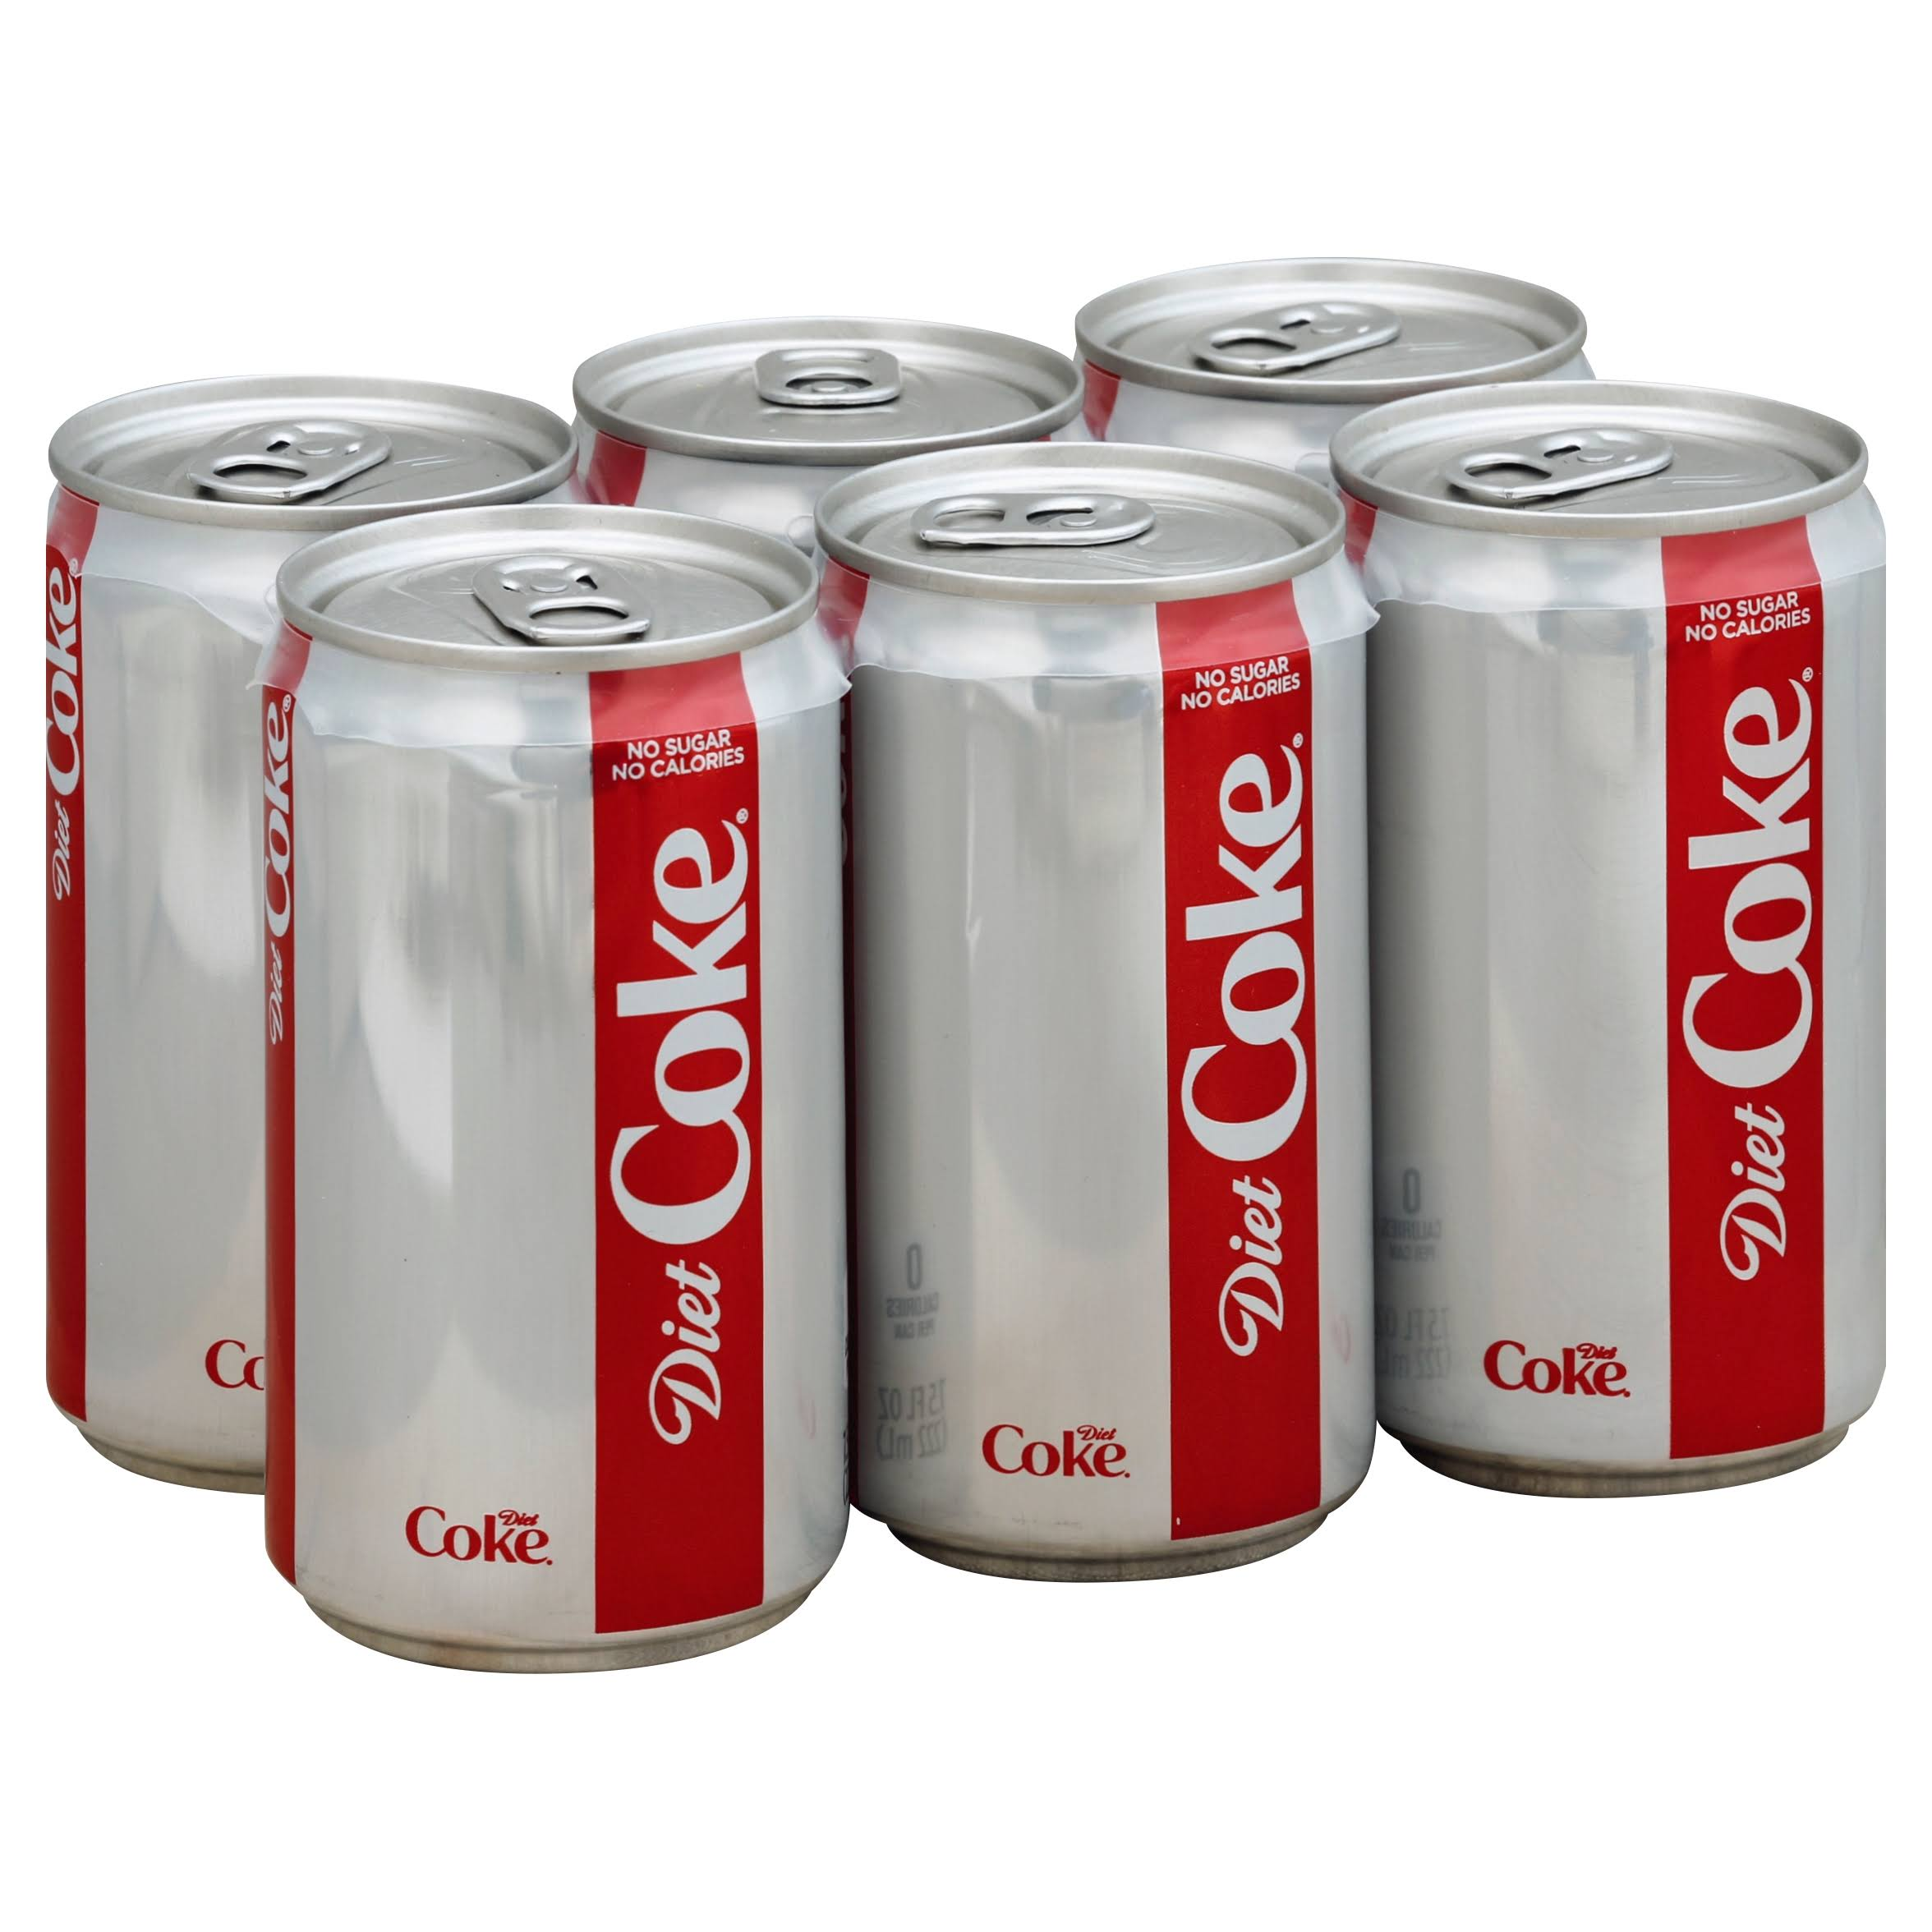 Coca Cola Diet Coke Mini Can - 7.5oz, 6pk